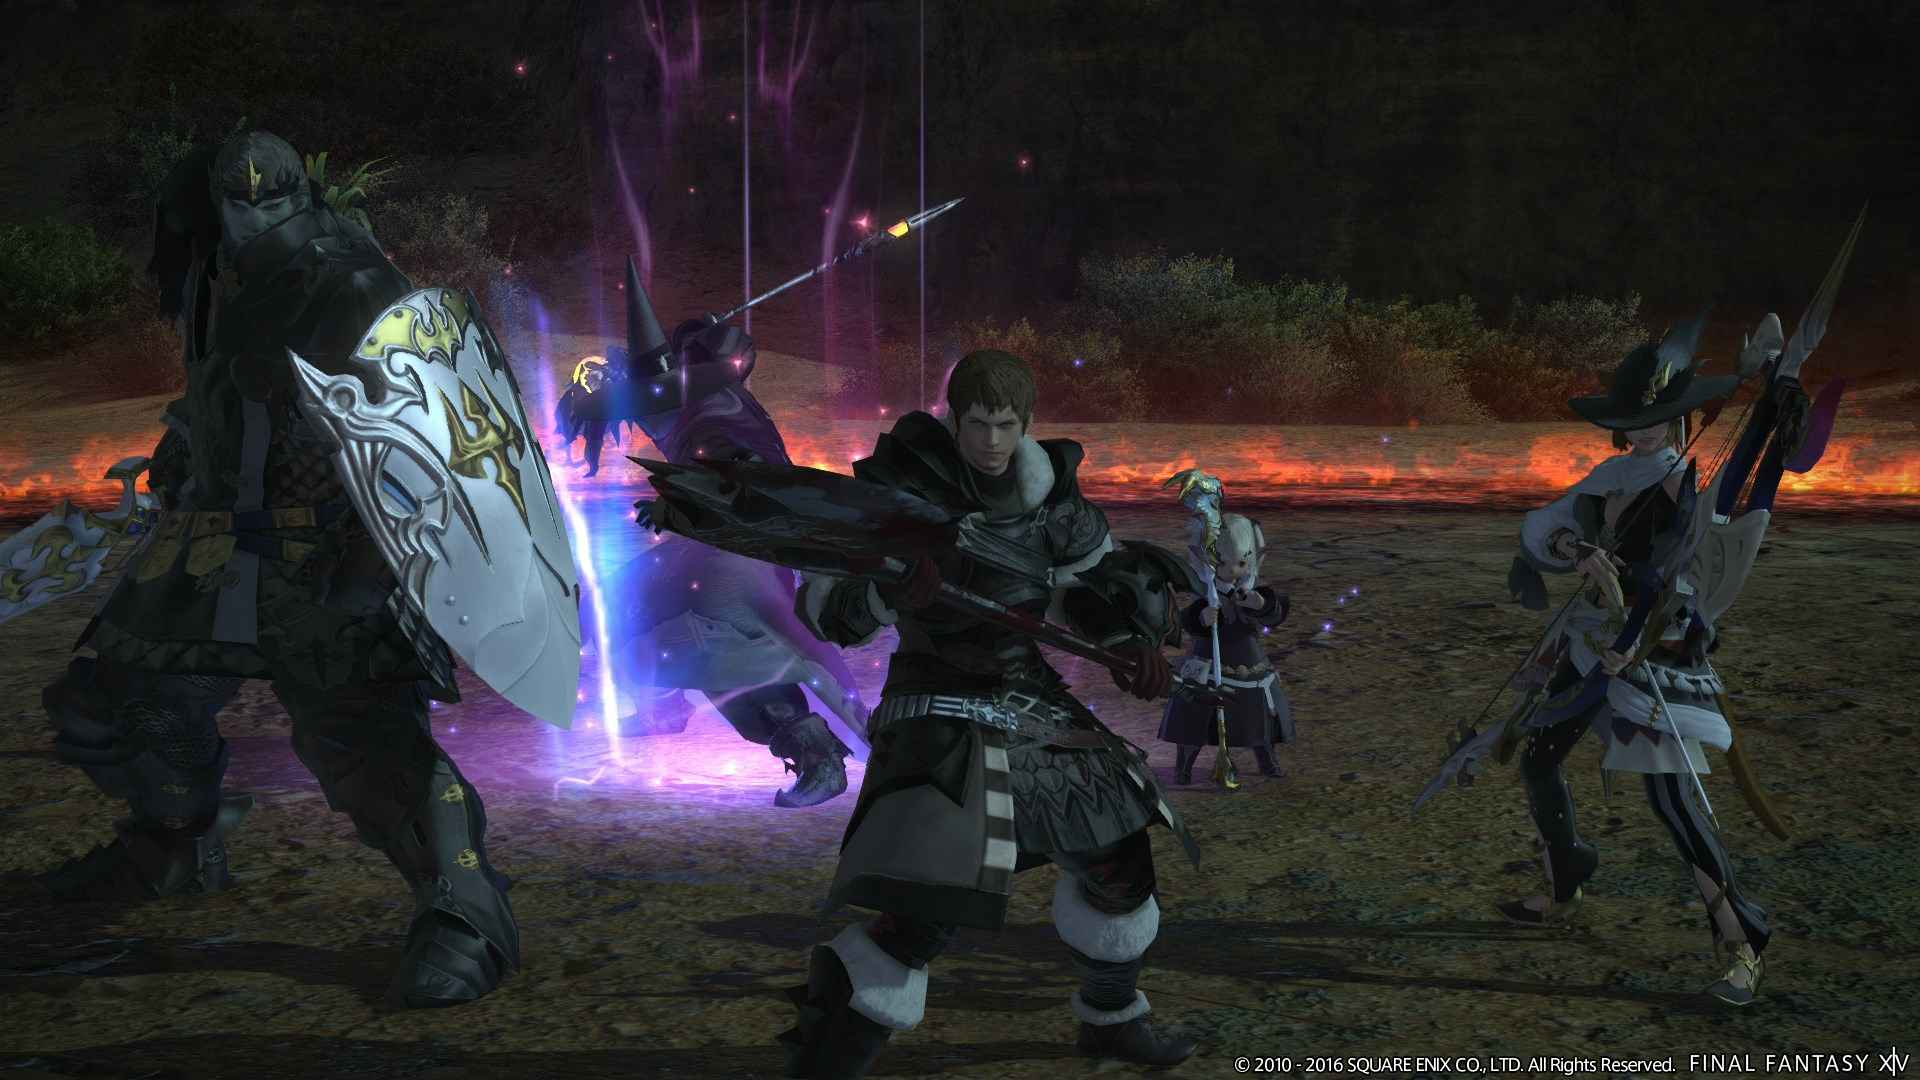 Final Fantasy XIV previews the main scenario and dungeons of patch